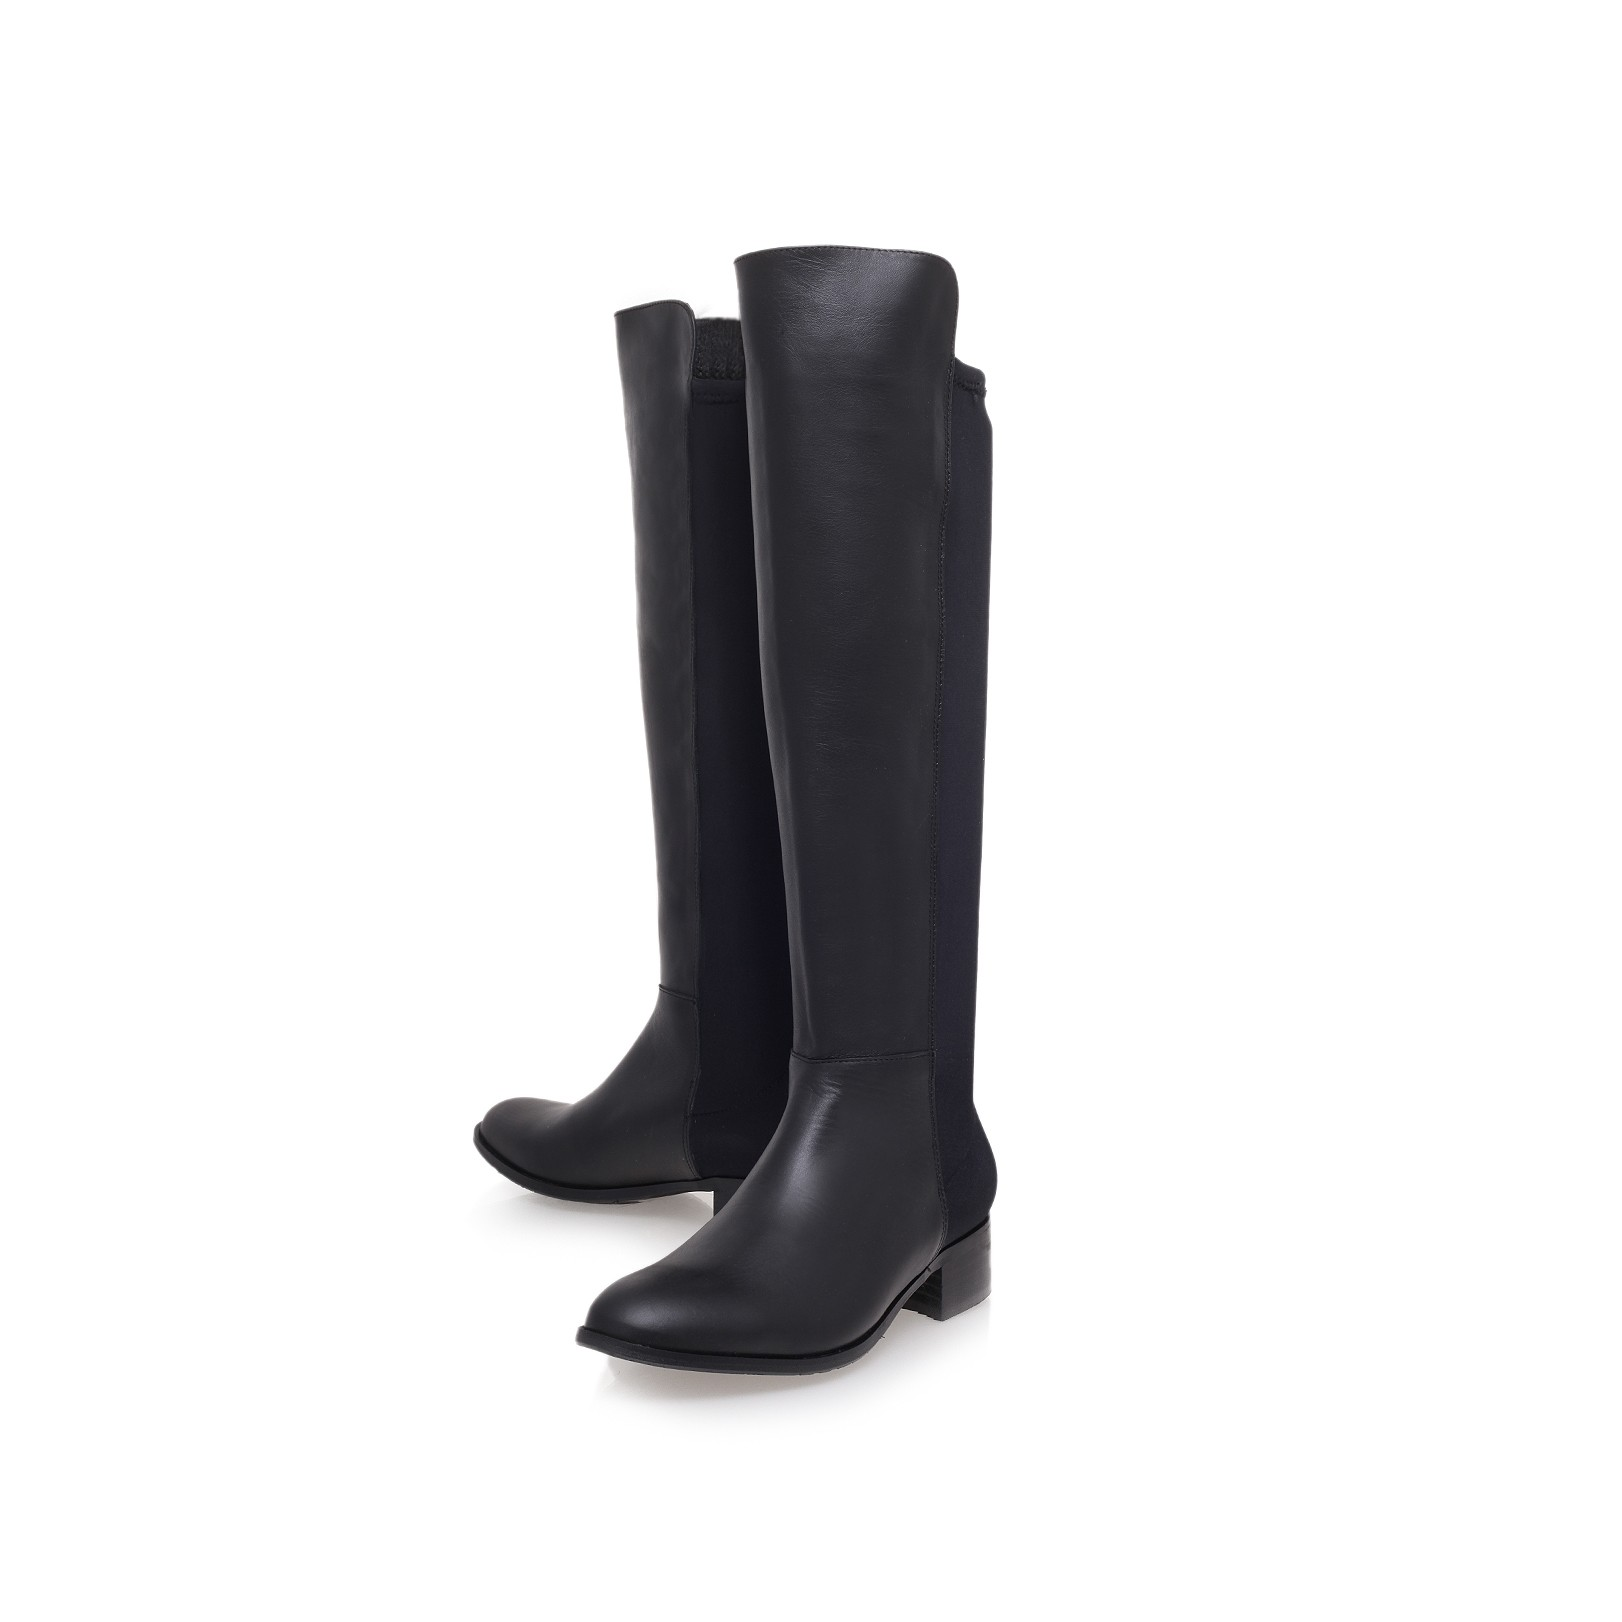 Kurt Geiger | WILLIAM Black Low Heel Knee Boots by KG Kurt Geiger